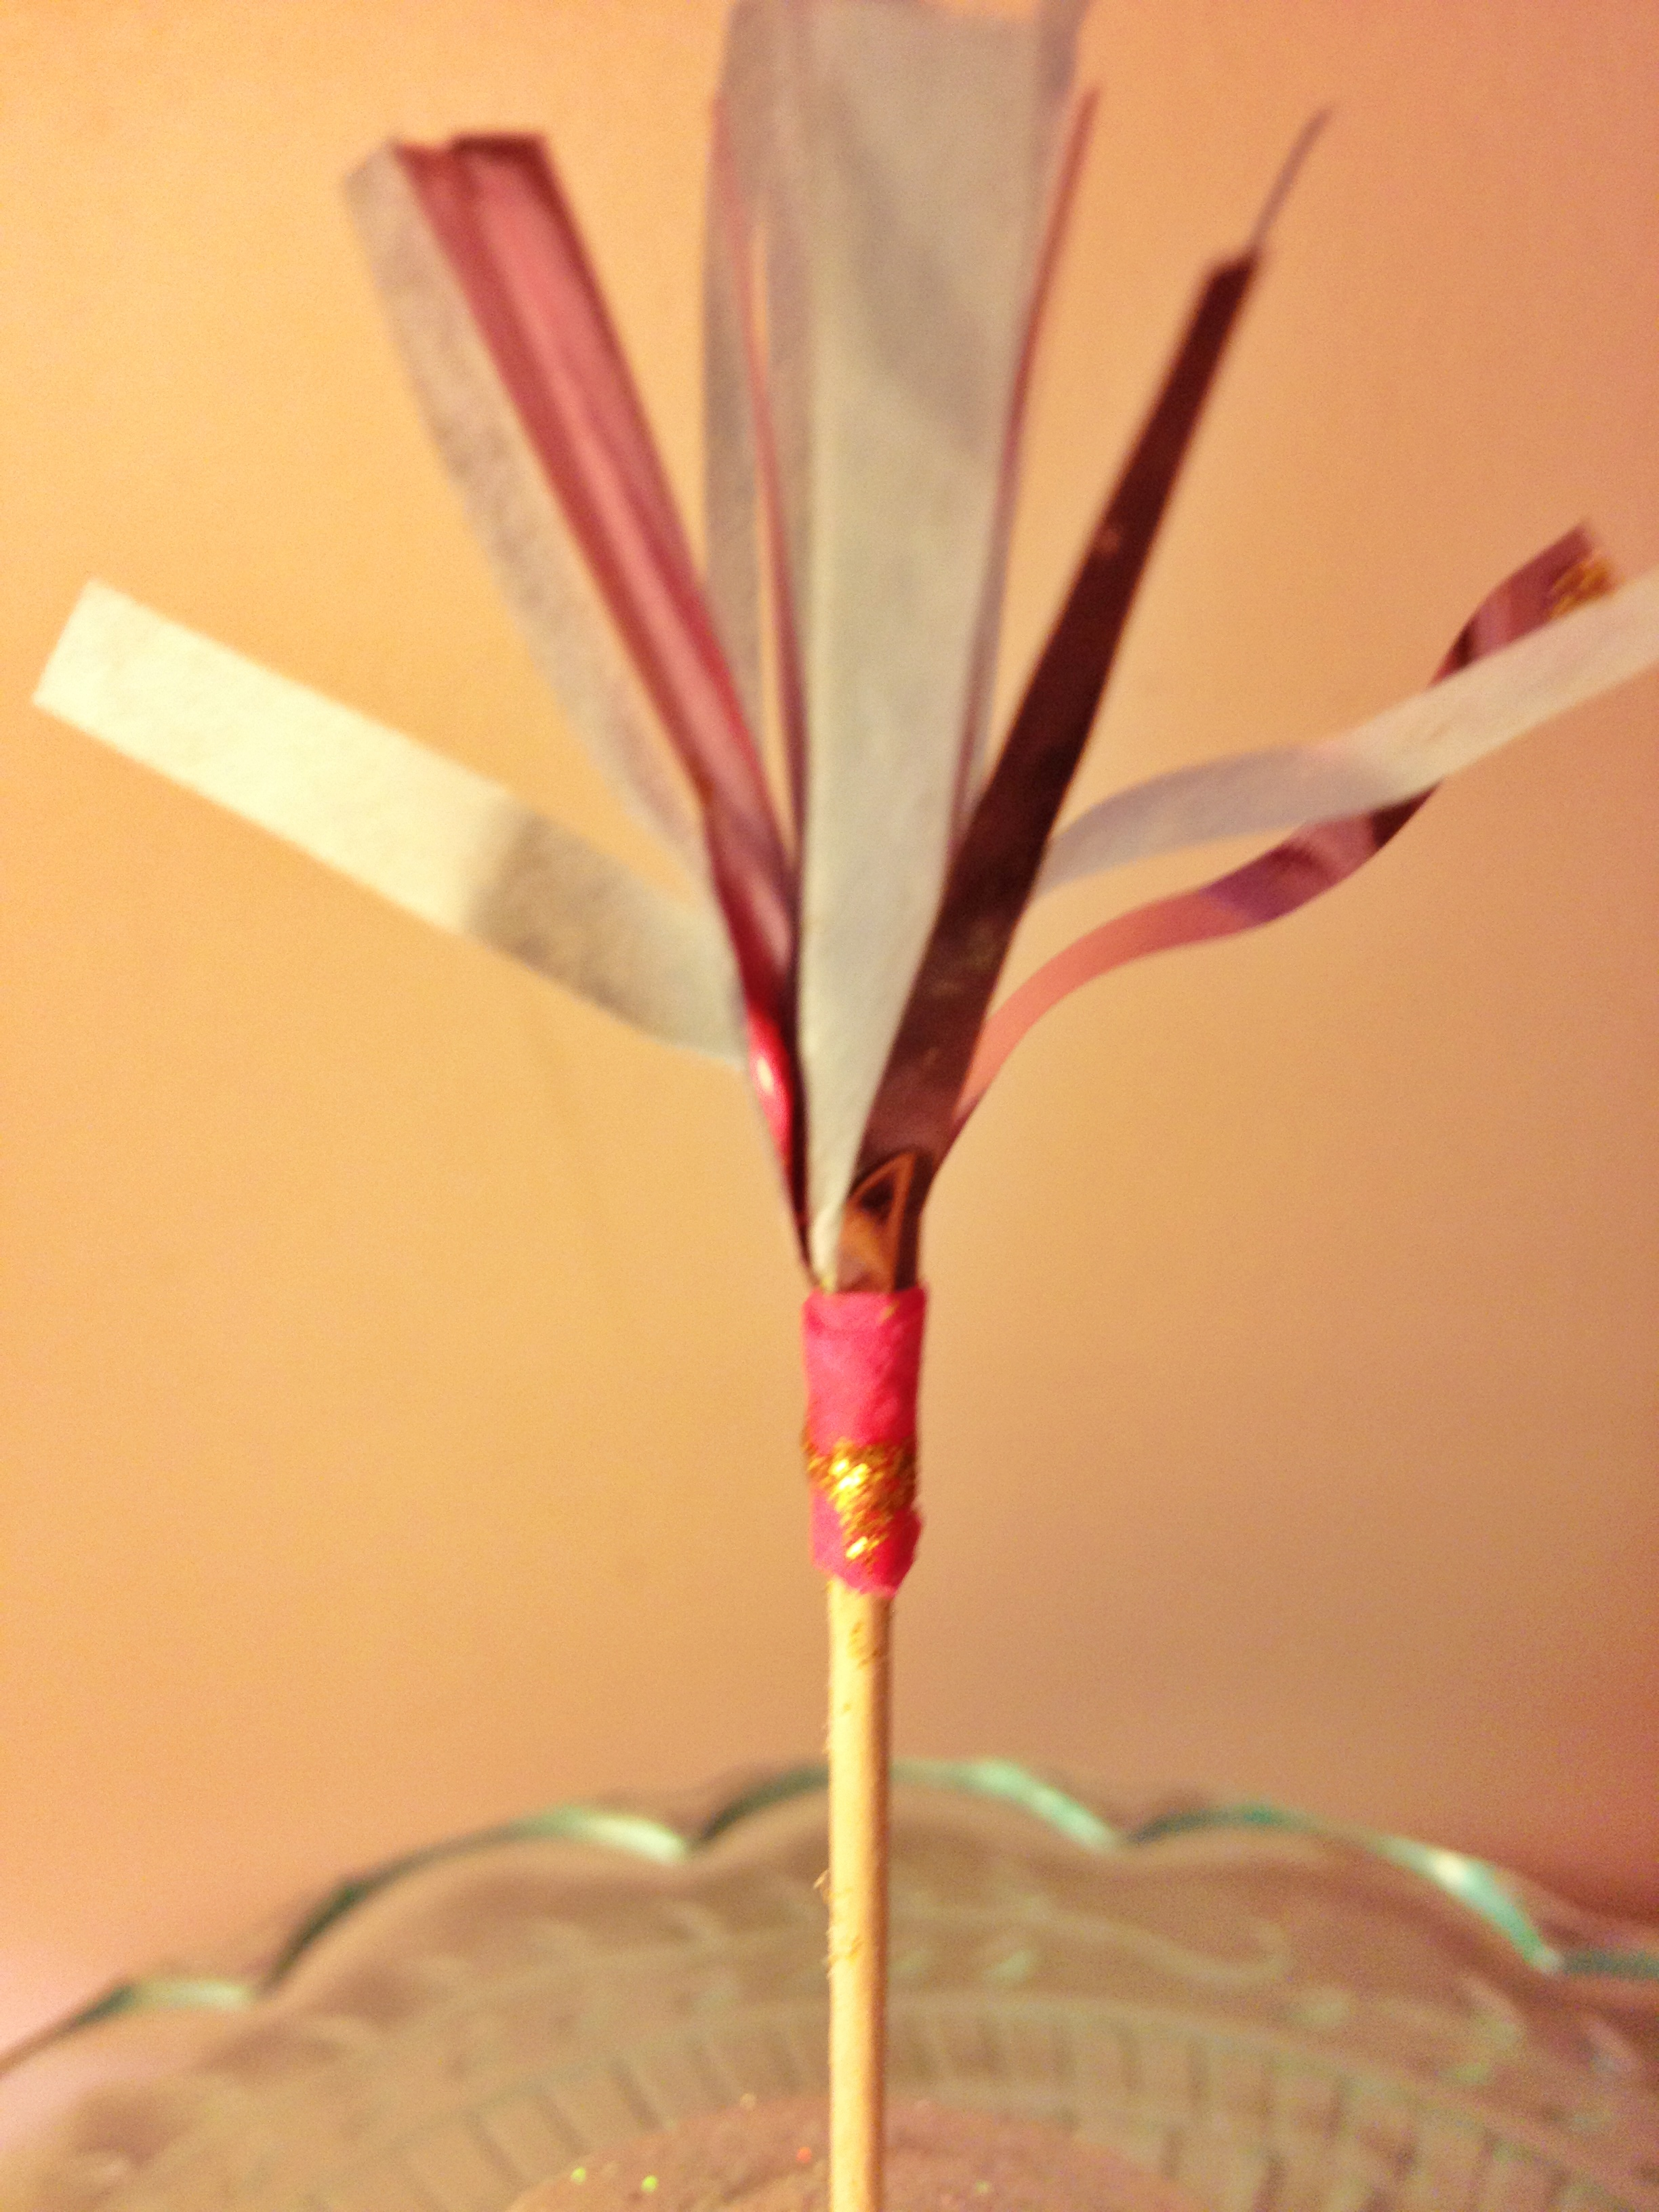 coming soon on sparkle motion decor - new photos for etsy page, decorative toothpicks